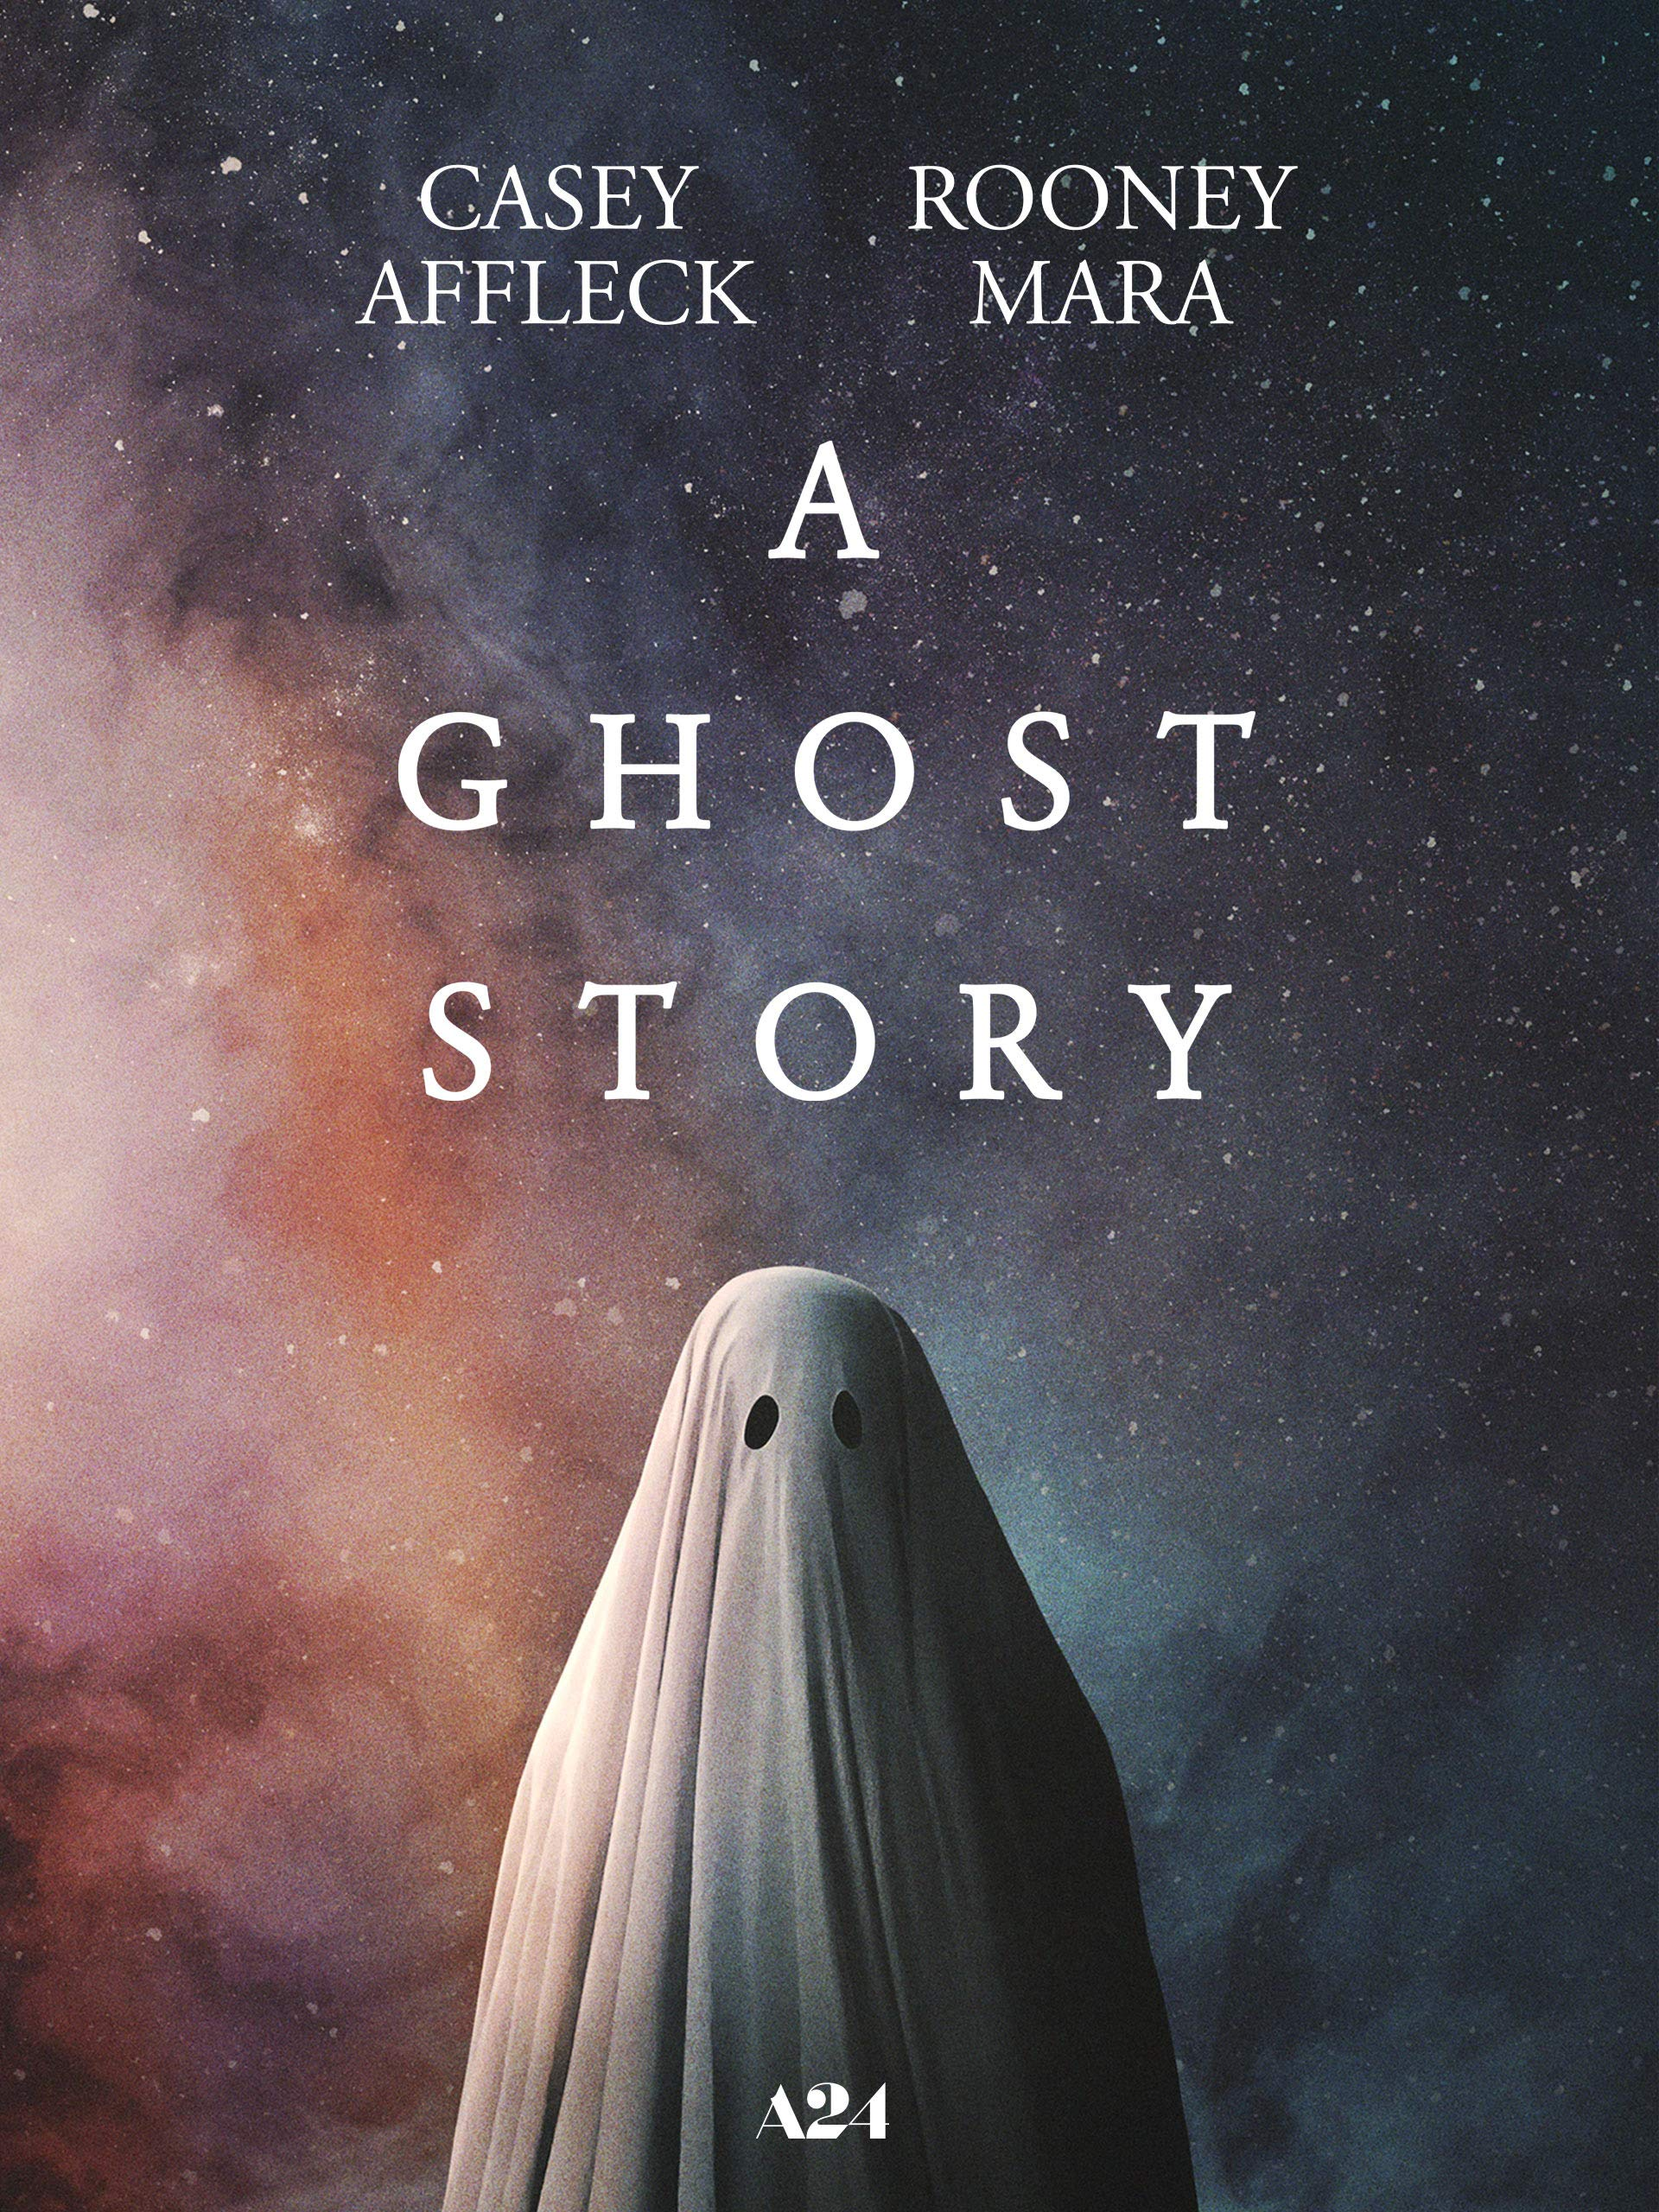 Amazon.com: Watch A Ghost Story | Prime Video